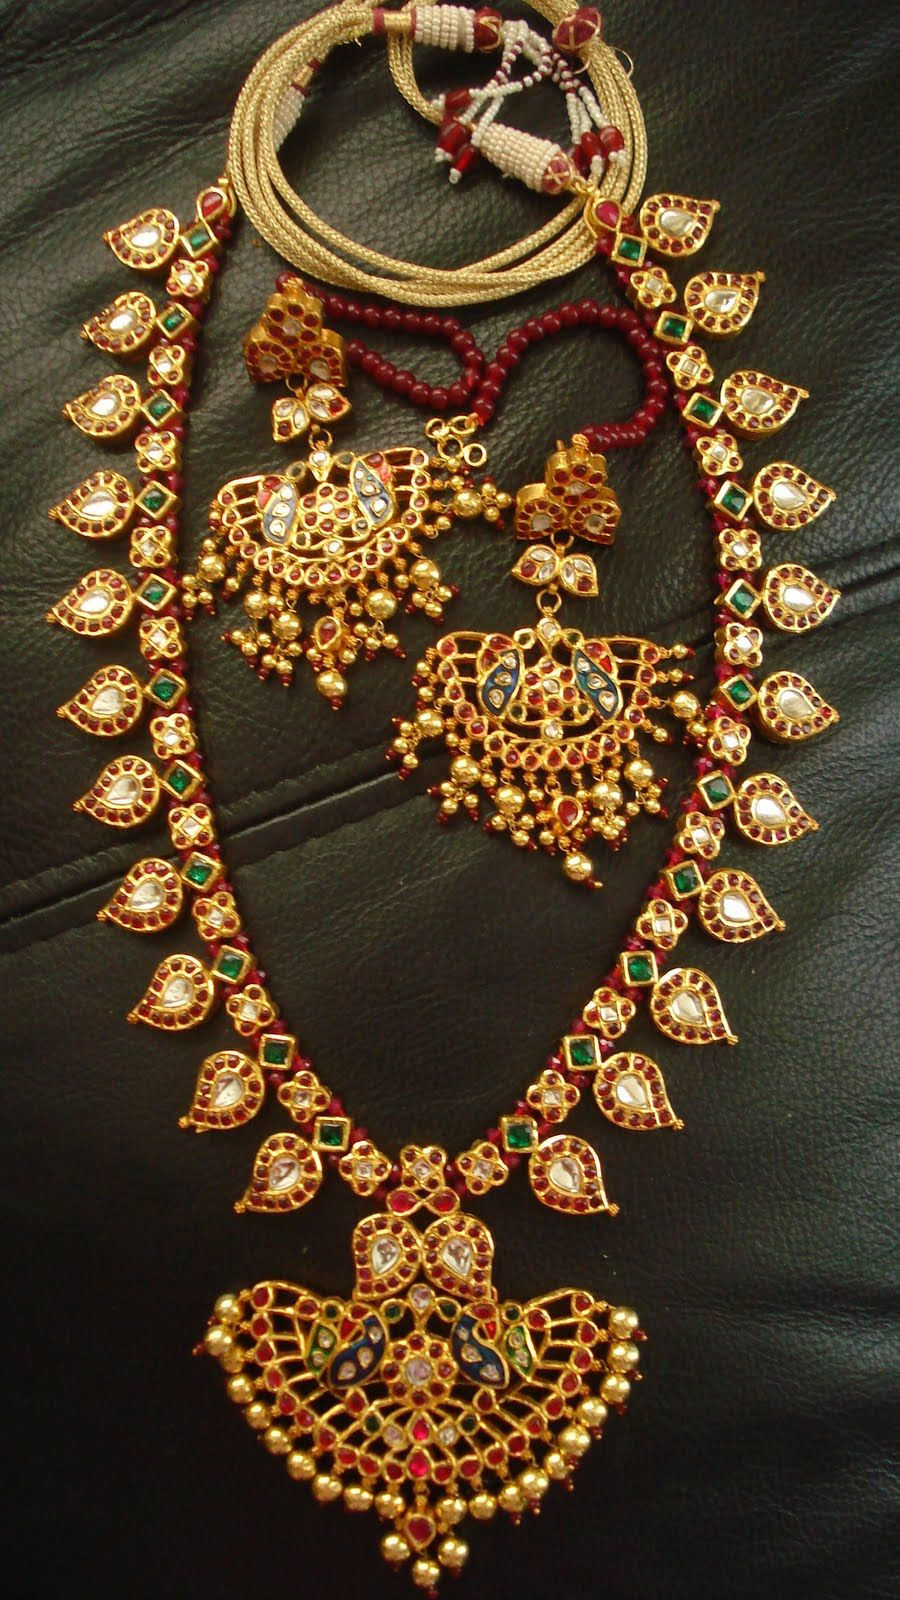 Indian jewellery and clothing latest designs of kundan studded